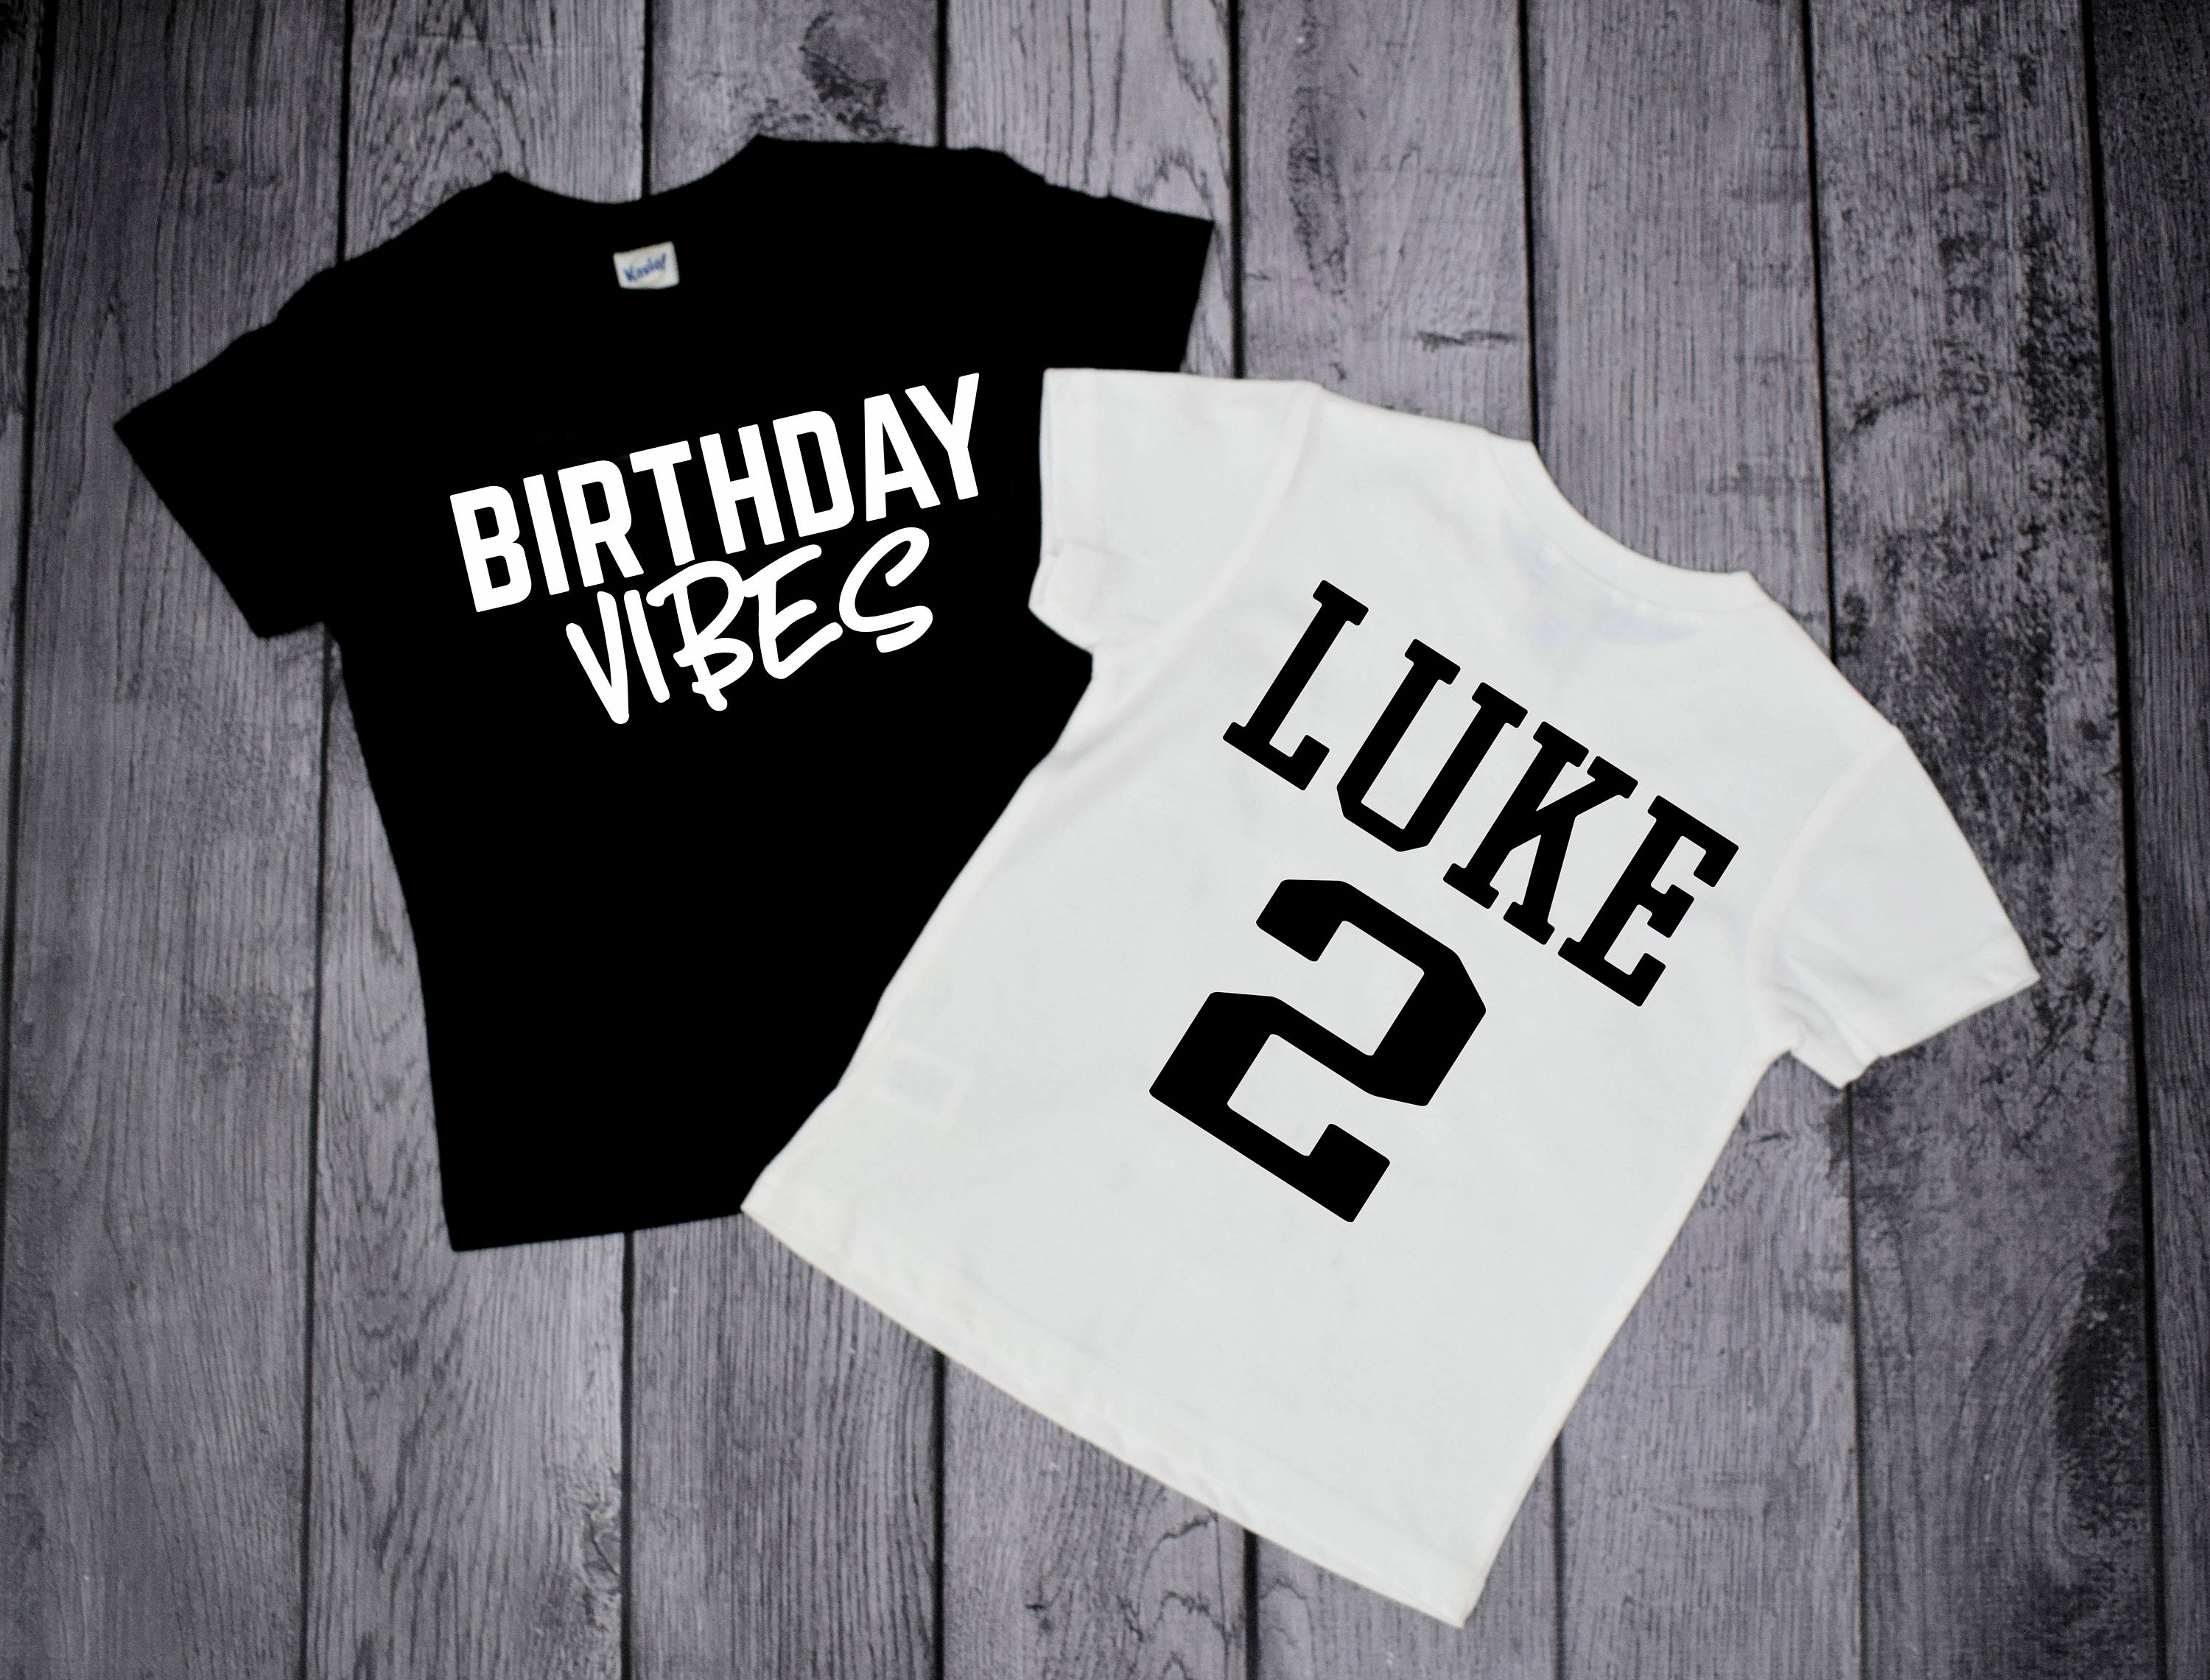 Birthday Shirts For Boys Vibes Kids Shirt